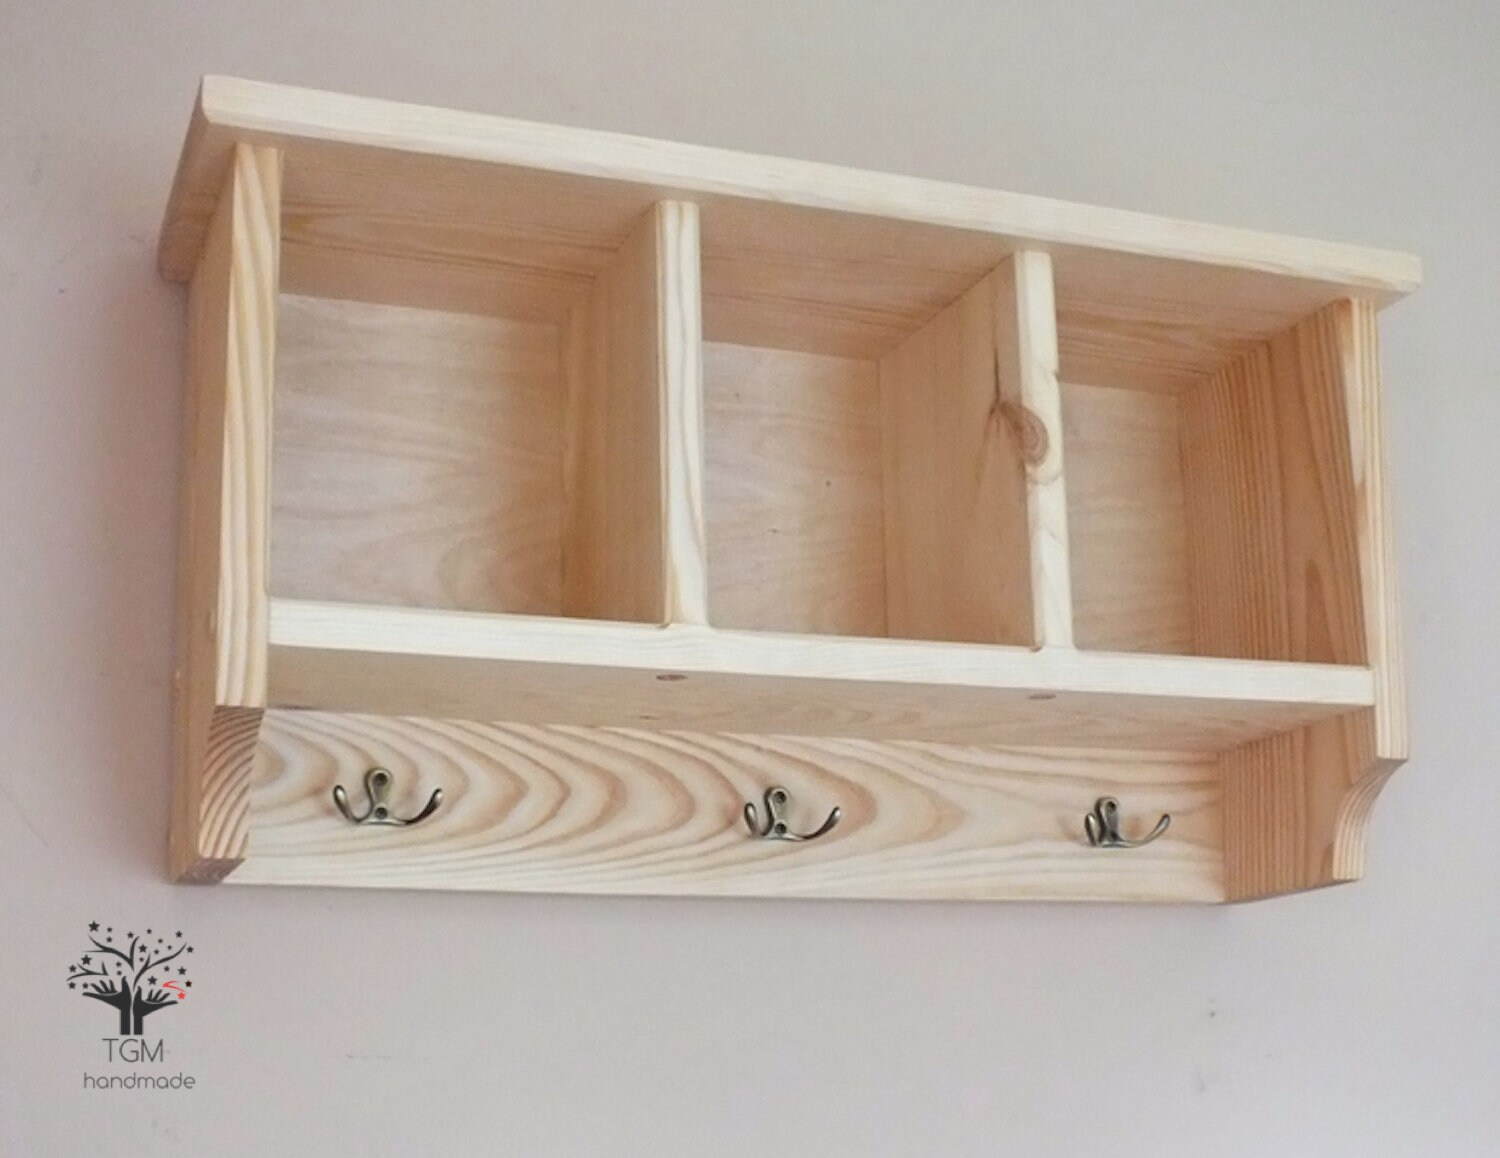 Wall Mounted Shelving Unit With Hangers Hanging Cupboard Storage Cabinet